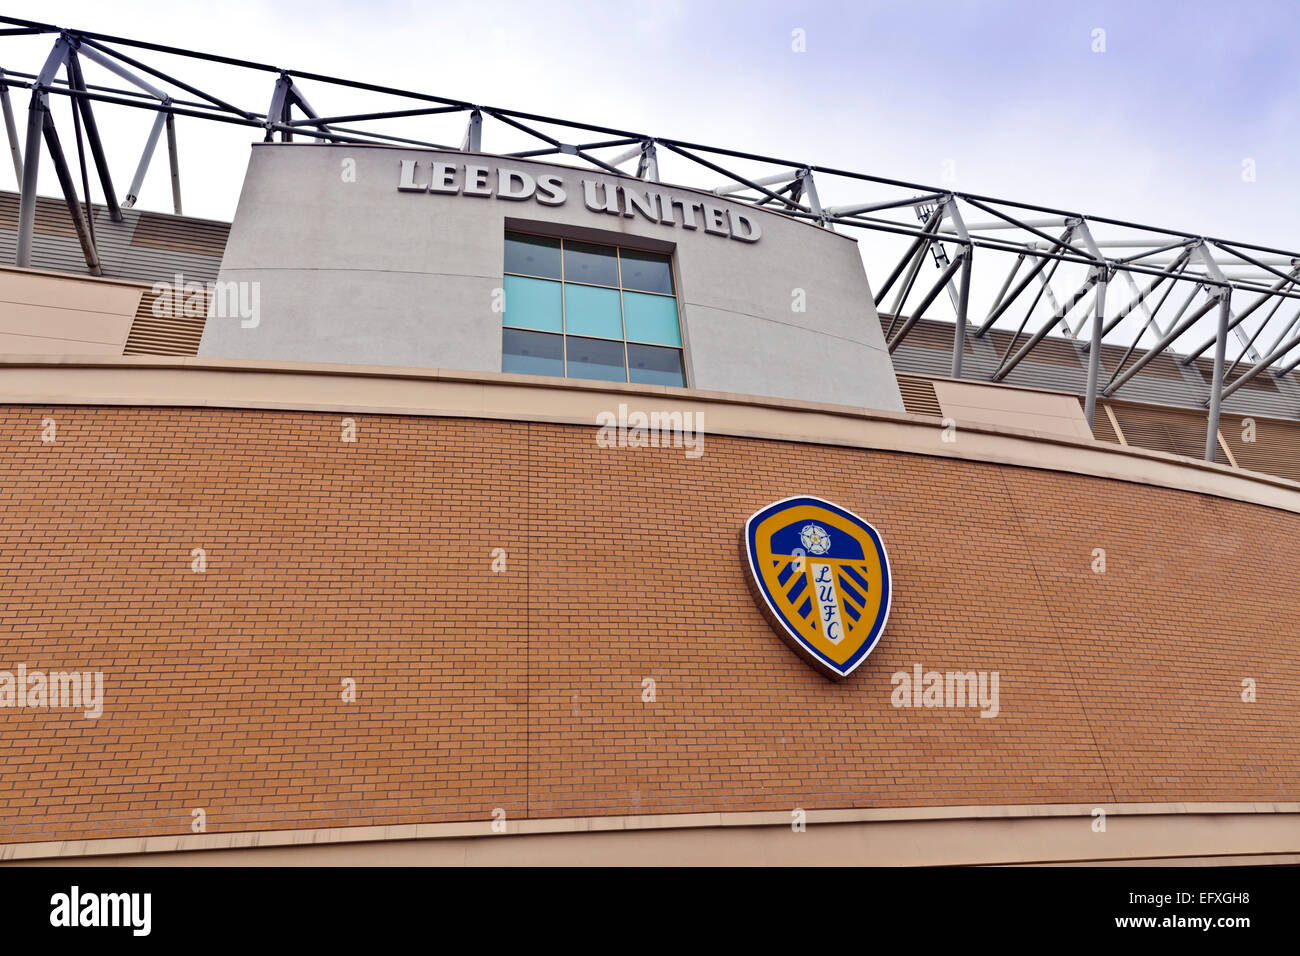 Elland Road stadium is home of Leeds United Football Club since 1919 following the disbanding of Leeds City F.C. - Stock Image